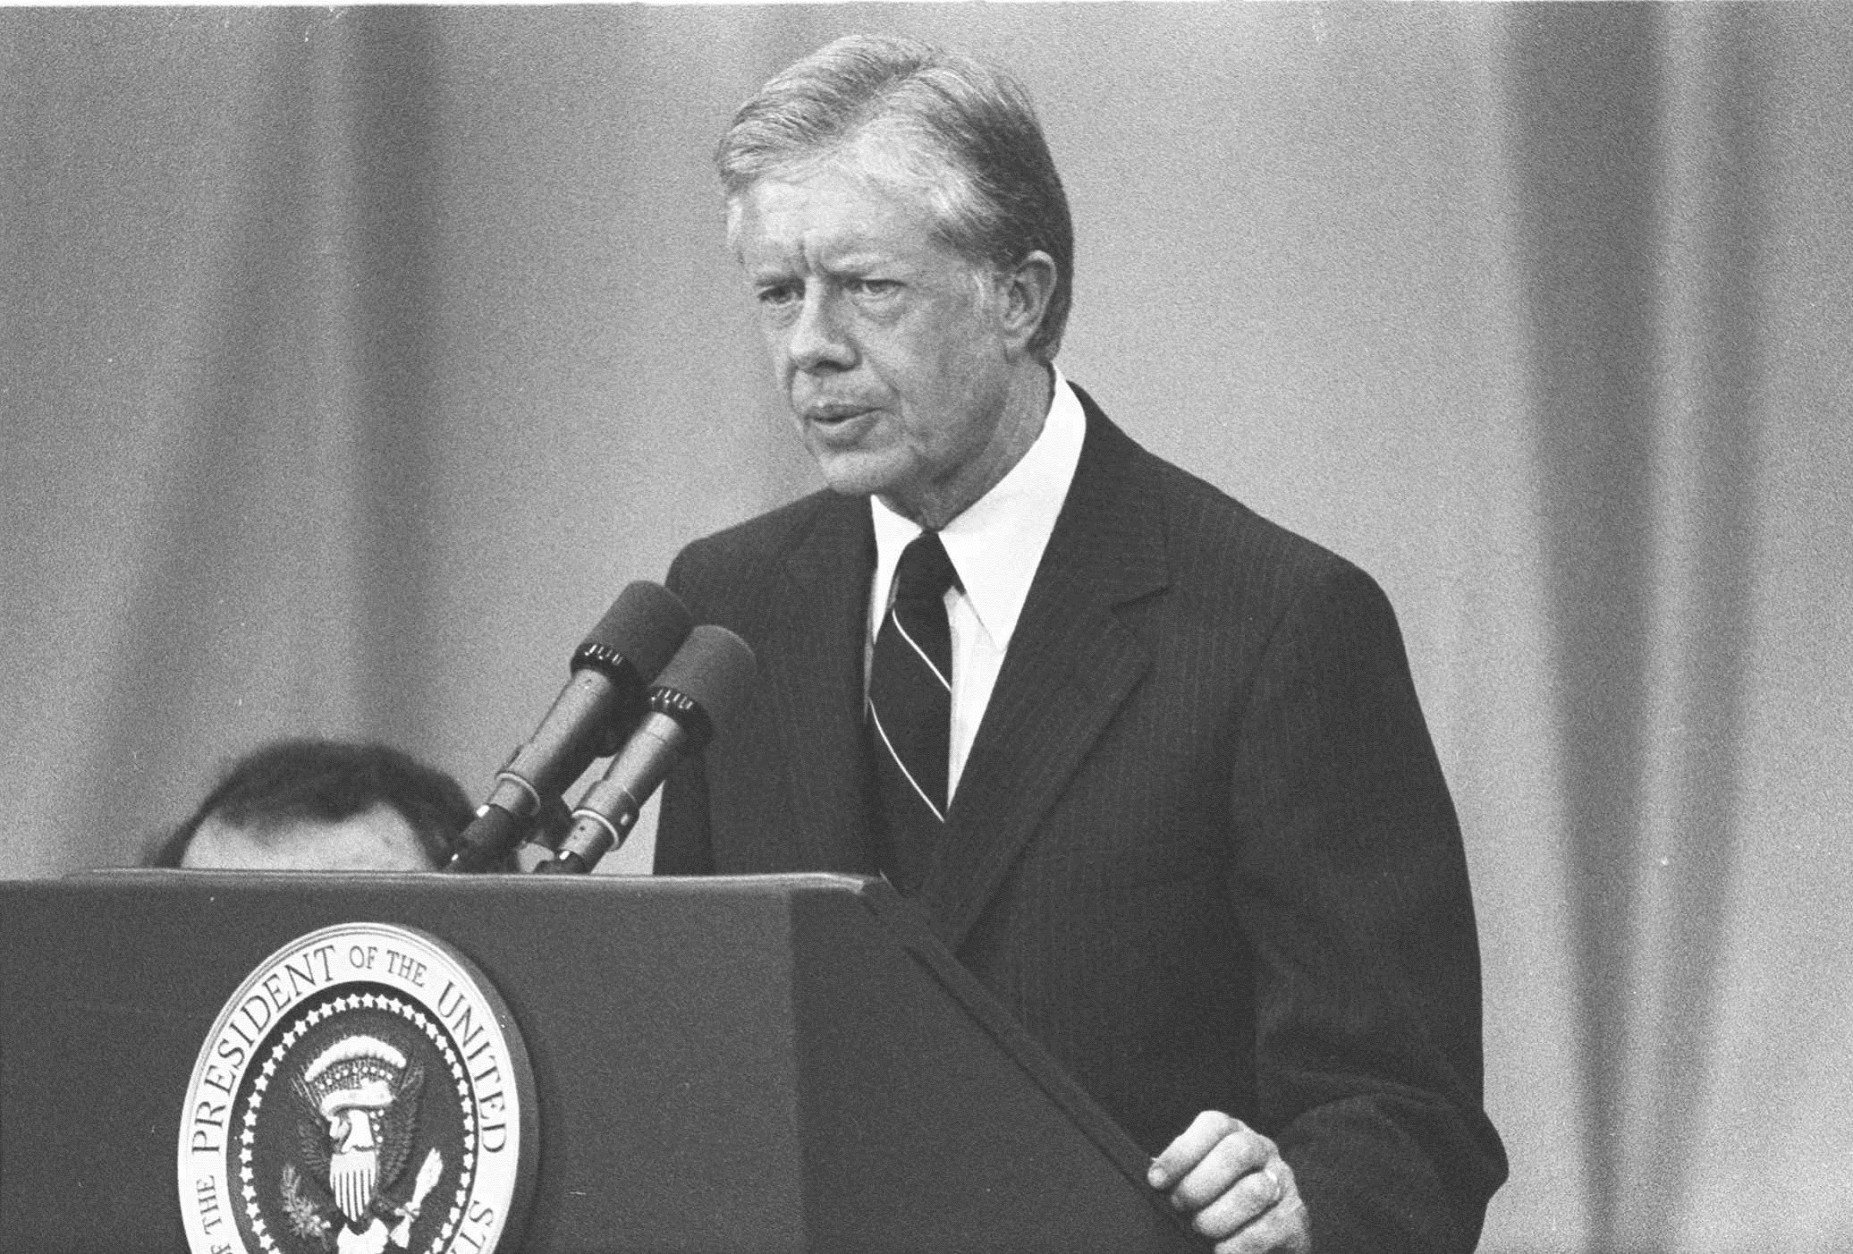 Jimmy Carter is shown in January 1977, speaking after  taking the oath of office as President of the United States. (AP Photo/stf)